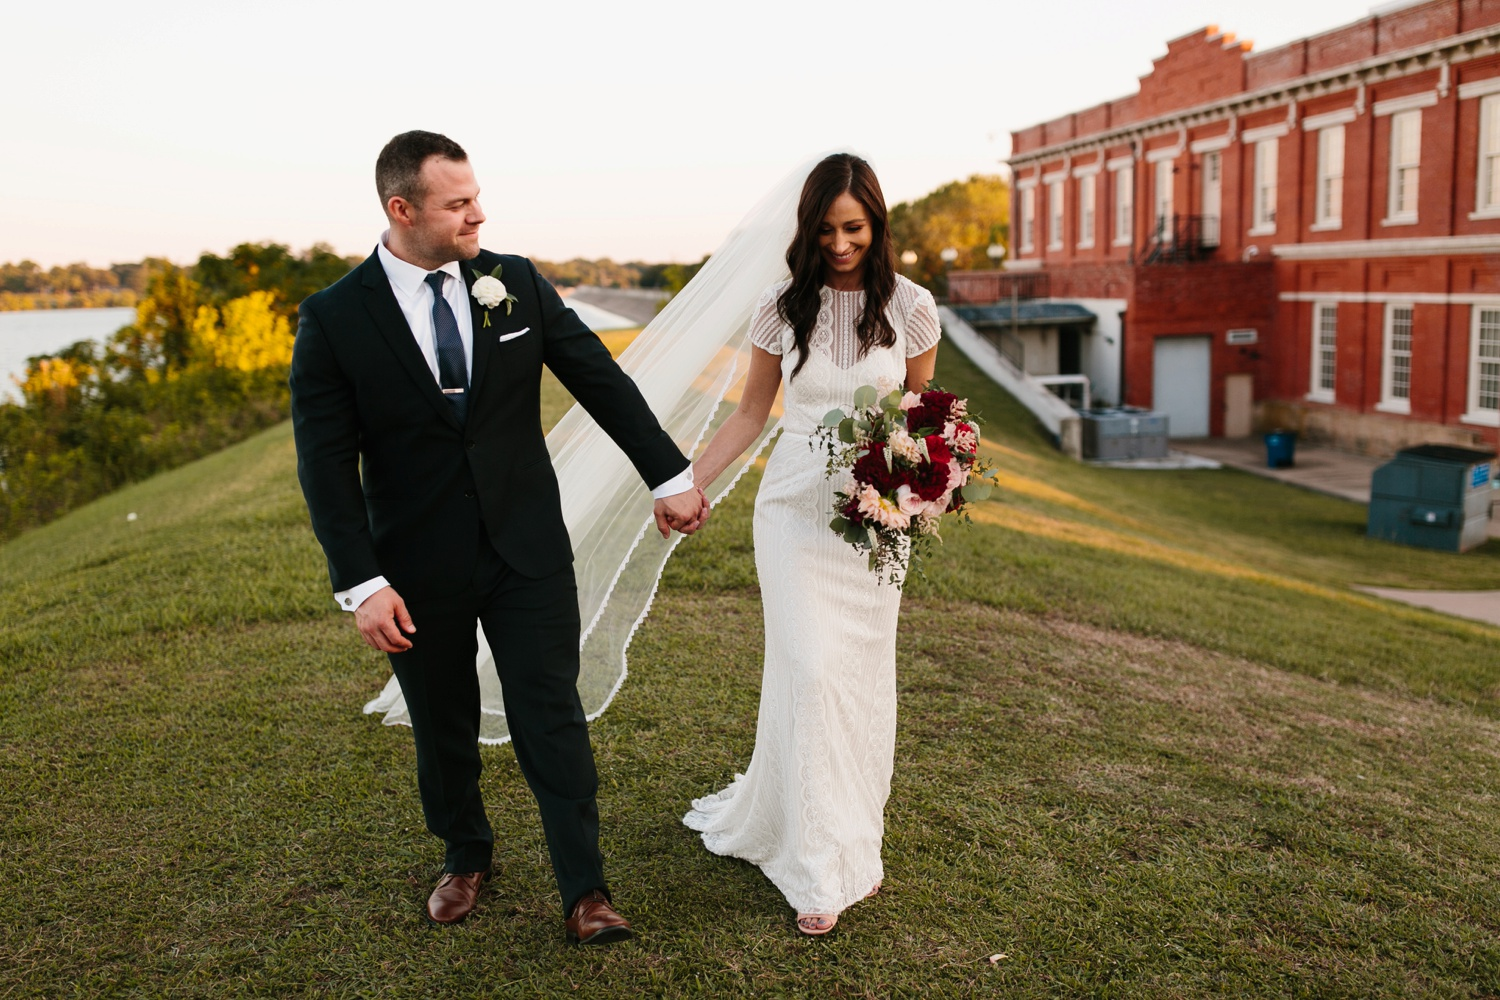 Kadee + Tyler | a raw, emotional wedding at the Filter Building on White Rock Lake in Dallas, TX by North Texas Wedding Photographer, Rachel Meagan Photography 170